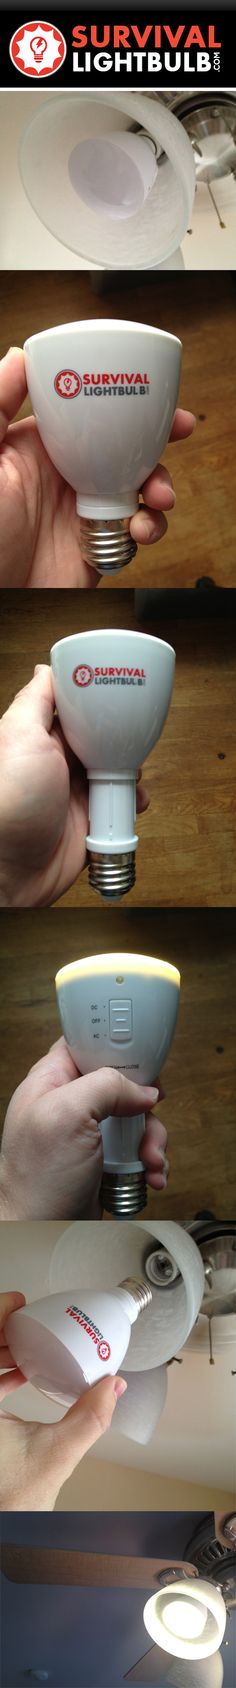 40,000 Hour LED Survival Lightbulb that doubles as a flashlight.